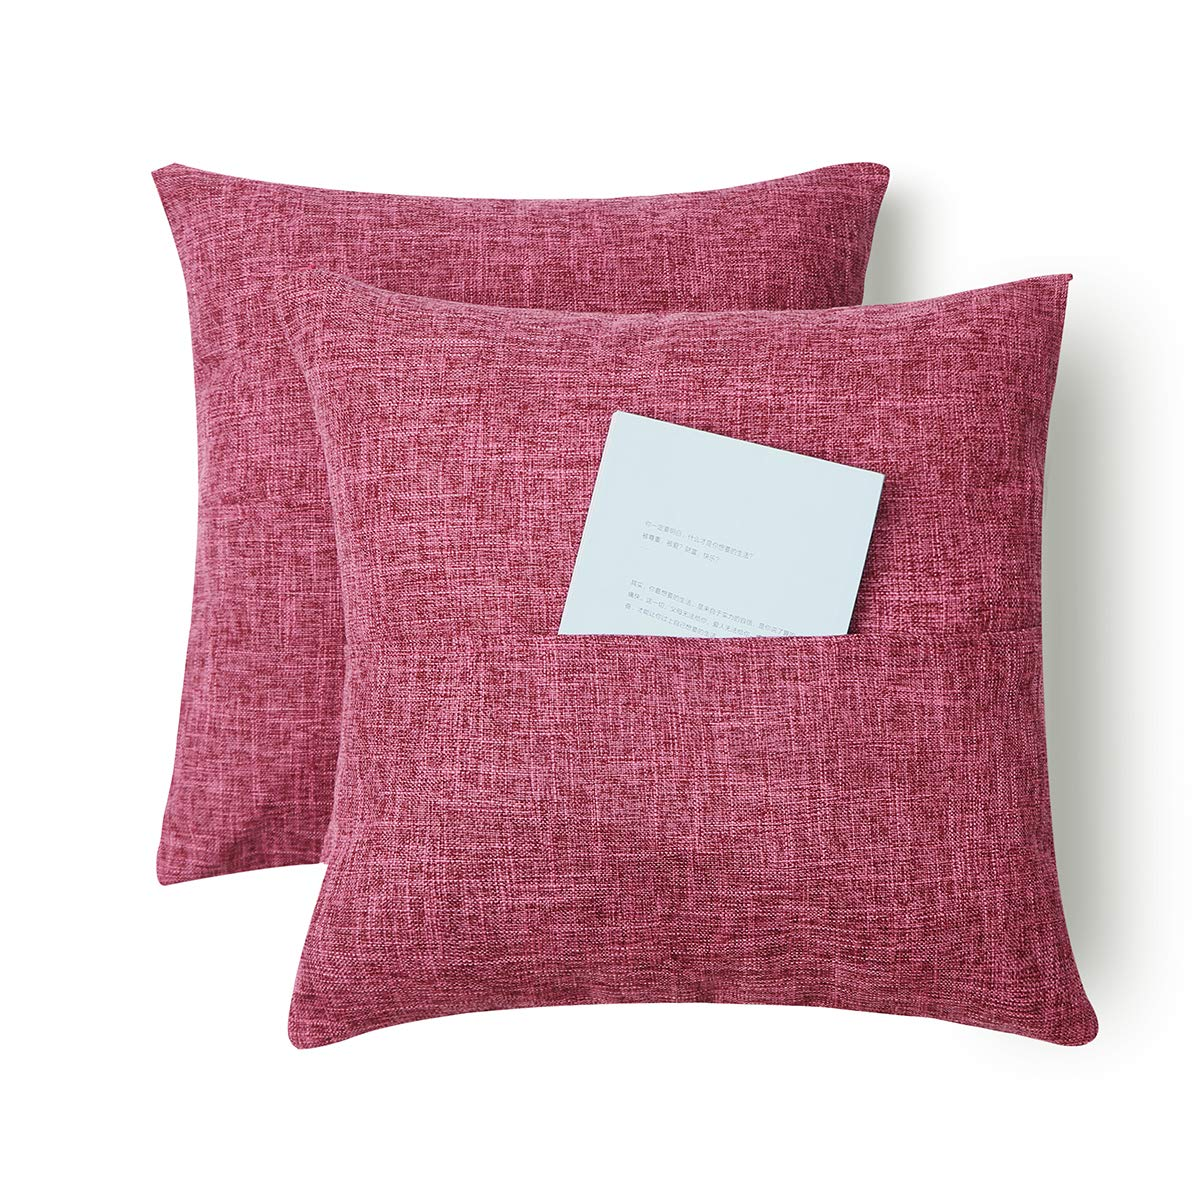 Set of 2 Multifunctional Throw Pillow Covers with Pocket, Decorative Square Pillow Case, Slipover Pillowslip for Home Sofa Couch Chair Back Seat Bedroom Car, Invisible Zipper, 18 x 18 Inch-Rose Red